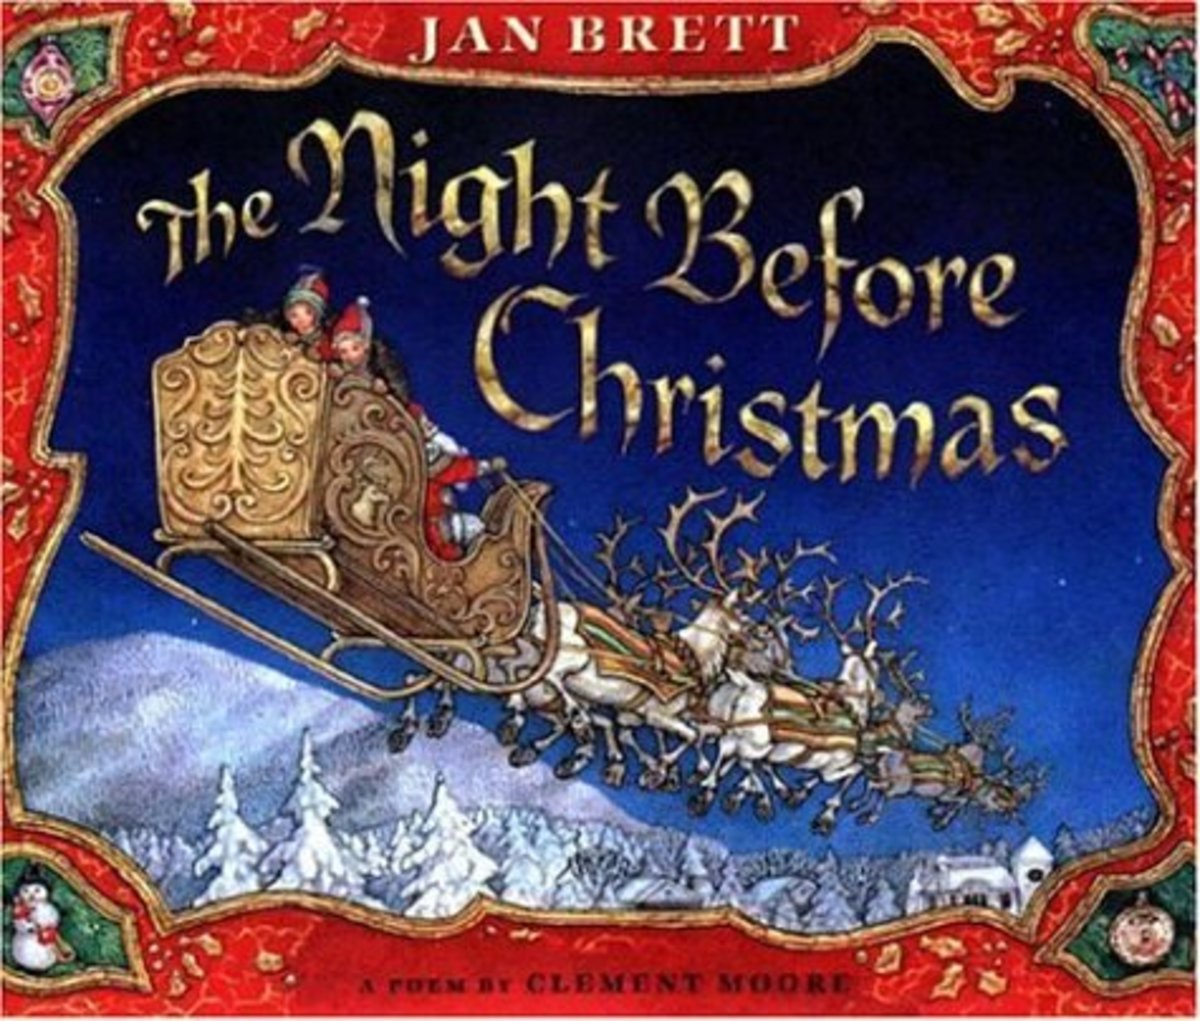 The Night Before Christmas illustrated by Jan Brett